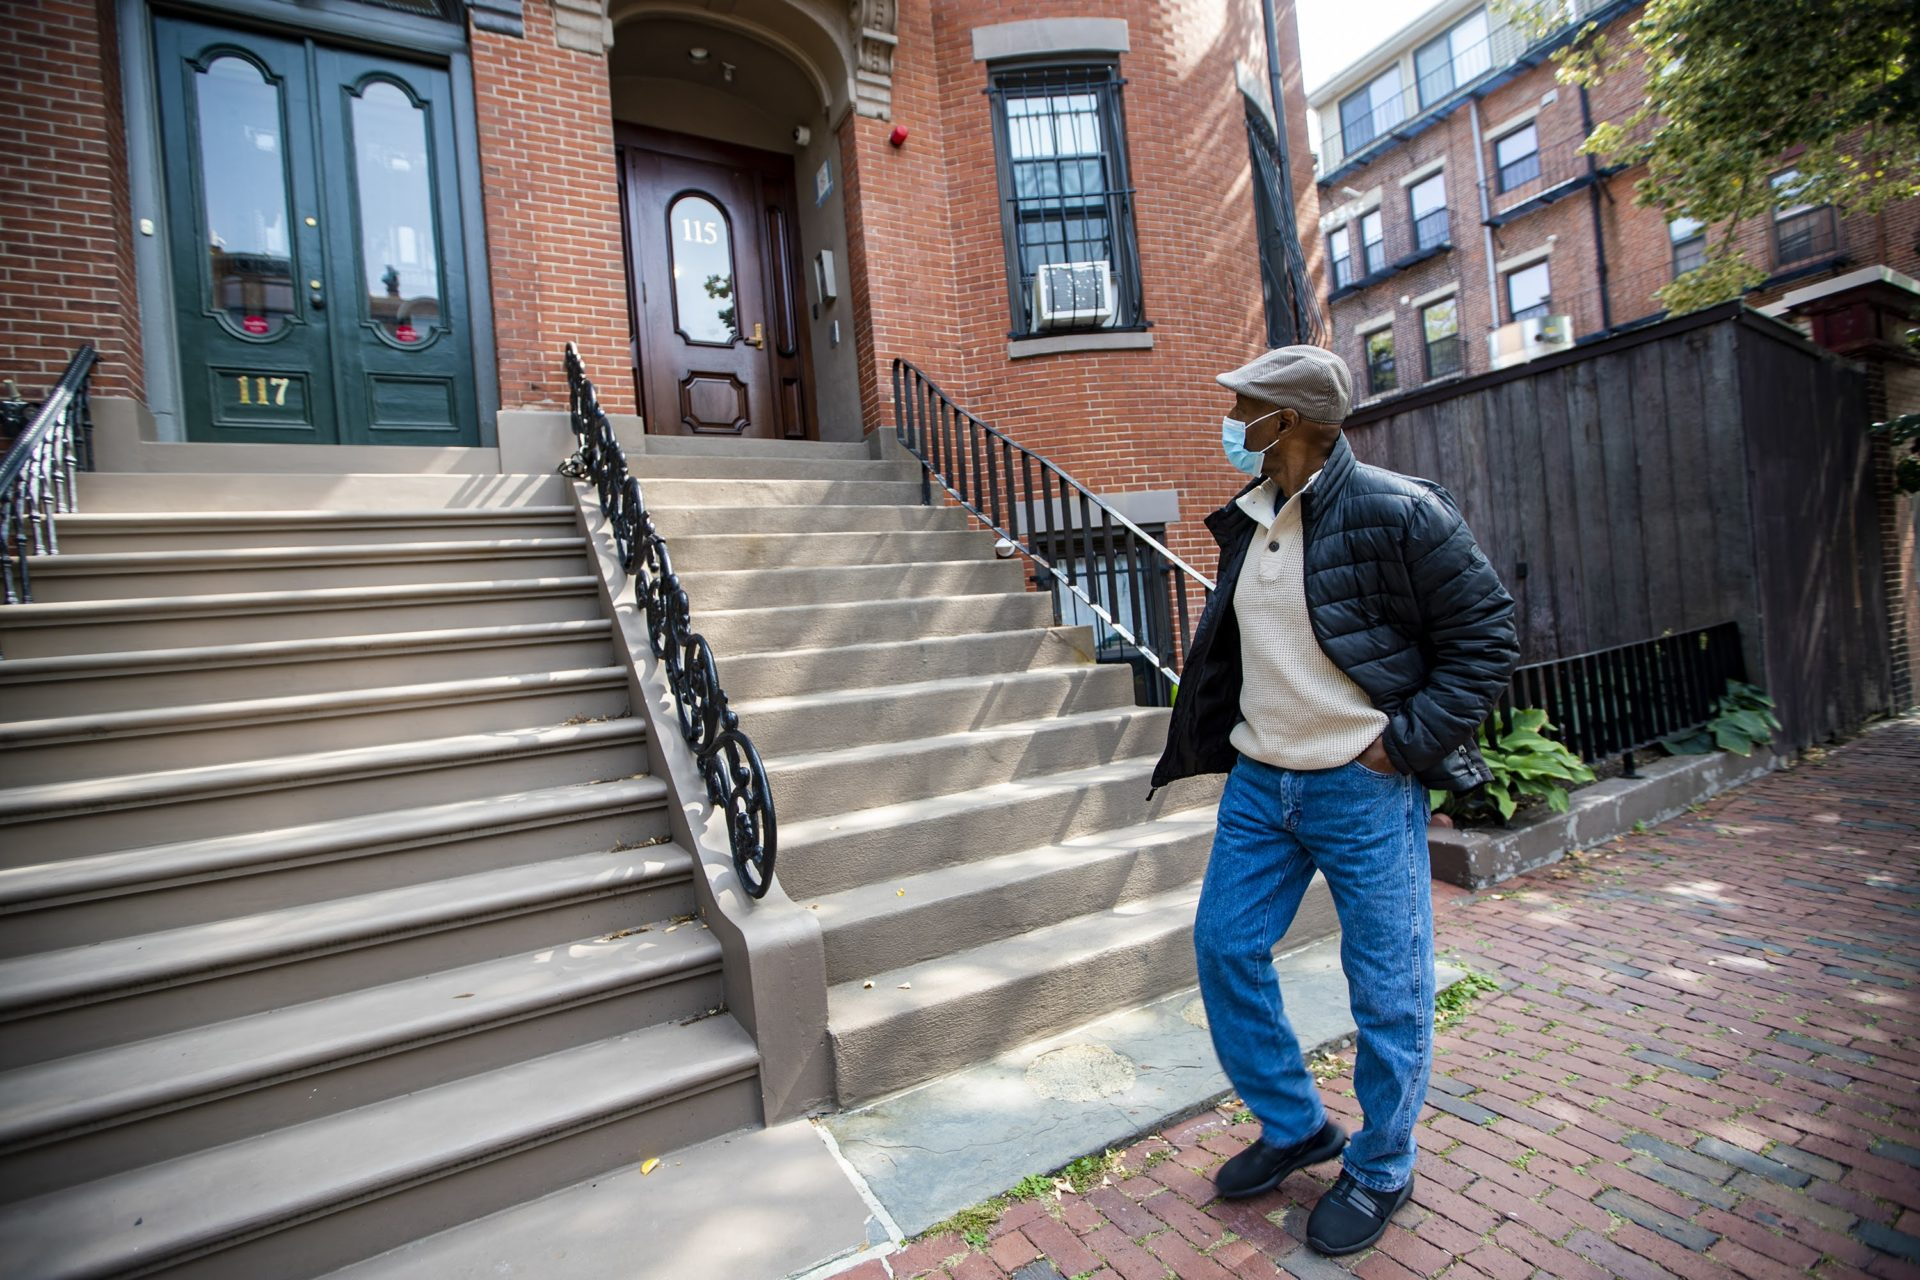 Charles Clark, of Tenants' Development Corp., walks past an apartment in the South End, one of the affordable housing properties managed by the nonprofit. (Jesse Costa/WBUR)